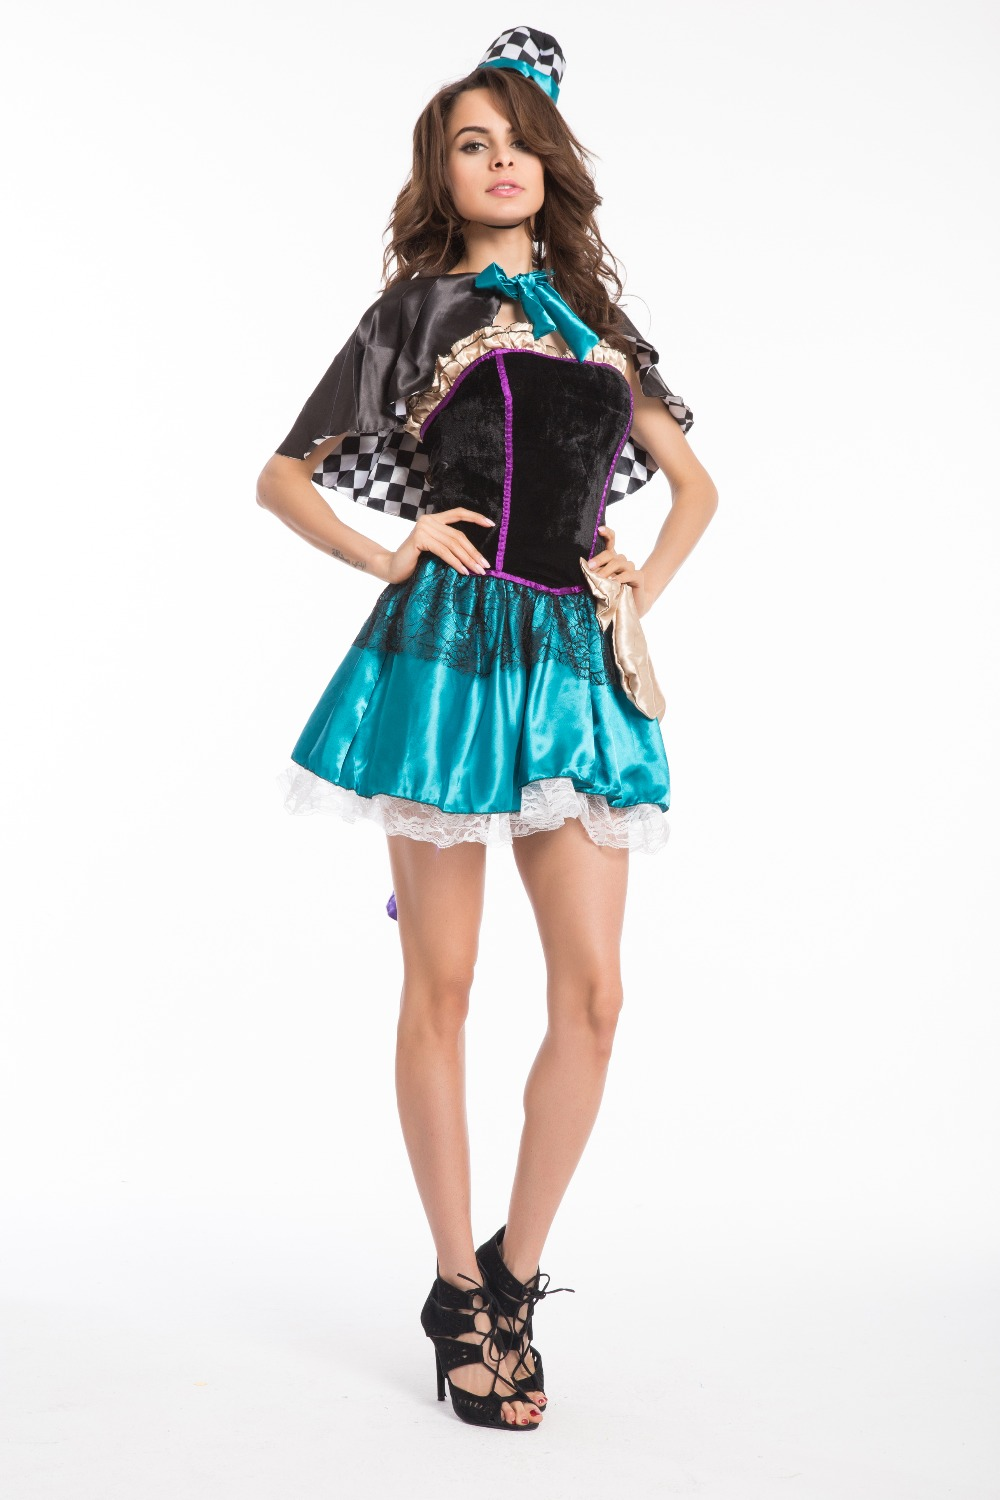 fddd3555f6 US $31.88  FREE SHIPPING Mad Hatter Costume Tea Party Alice In Wonderland  Fancy Dress Party Outfit 400-in Sexy Costumes from Novelty & Special Use on  ...